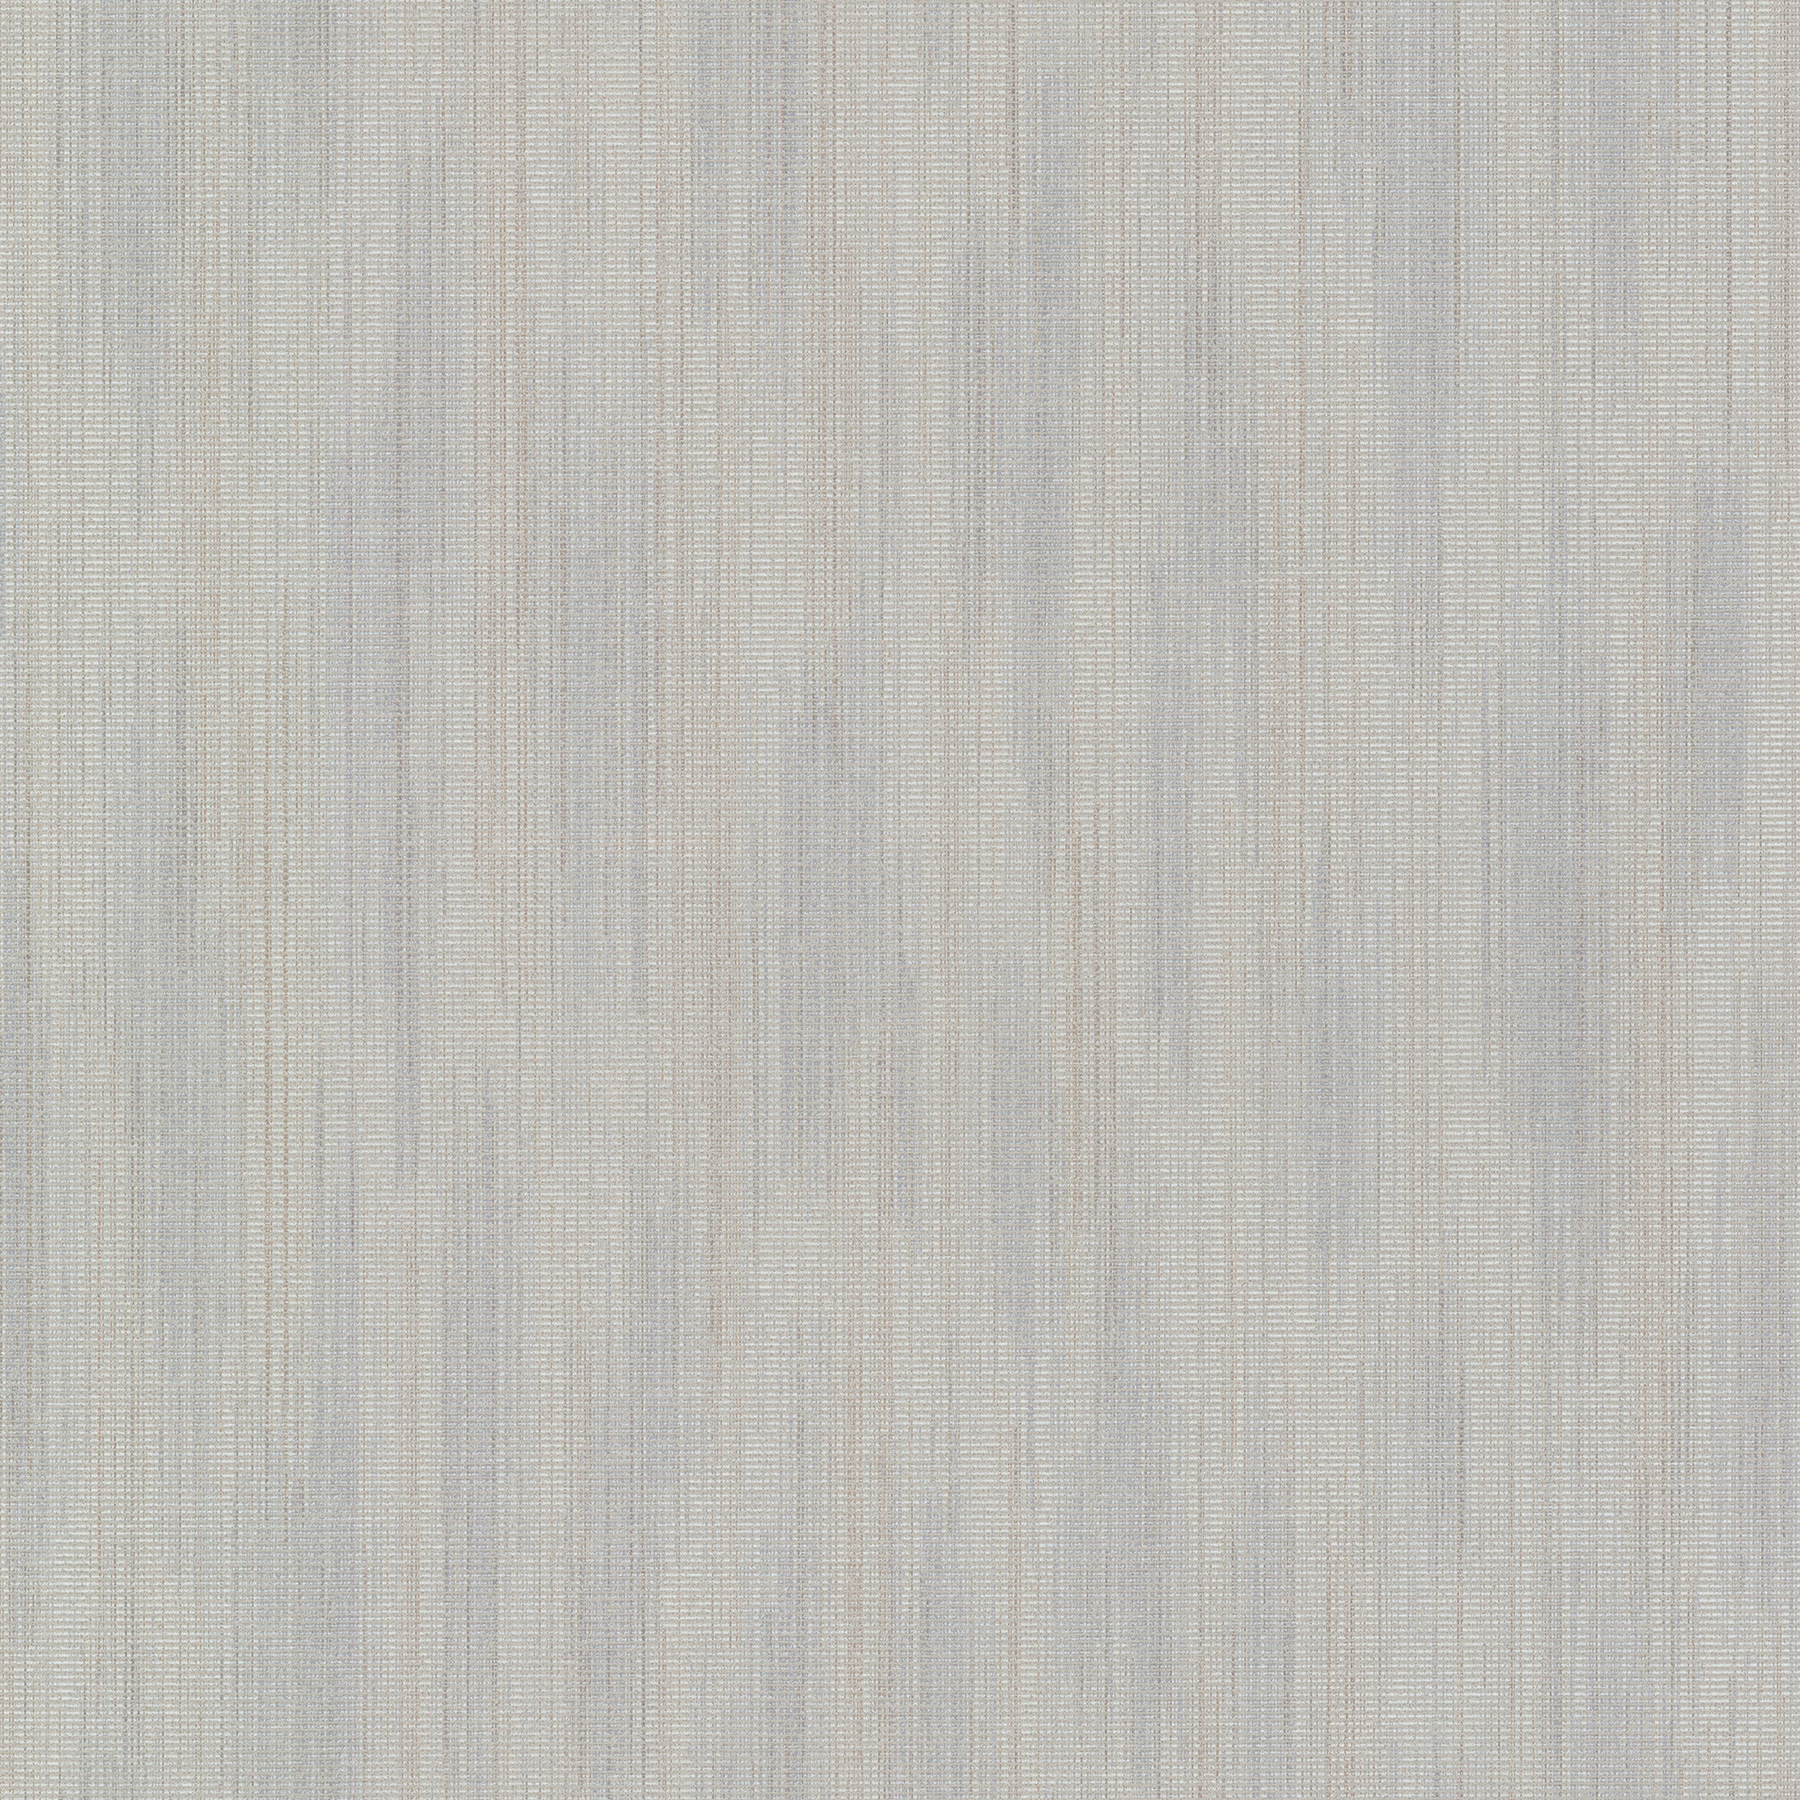 Picture of Blaise Pewter Ombre Texture Wallpaper